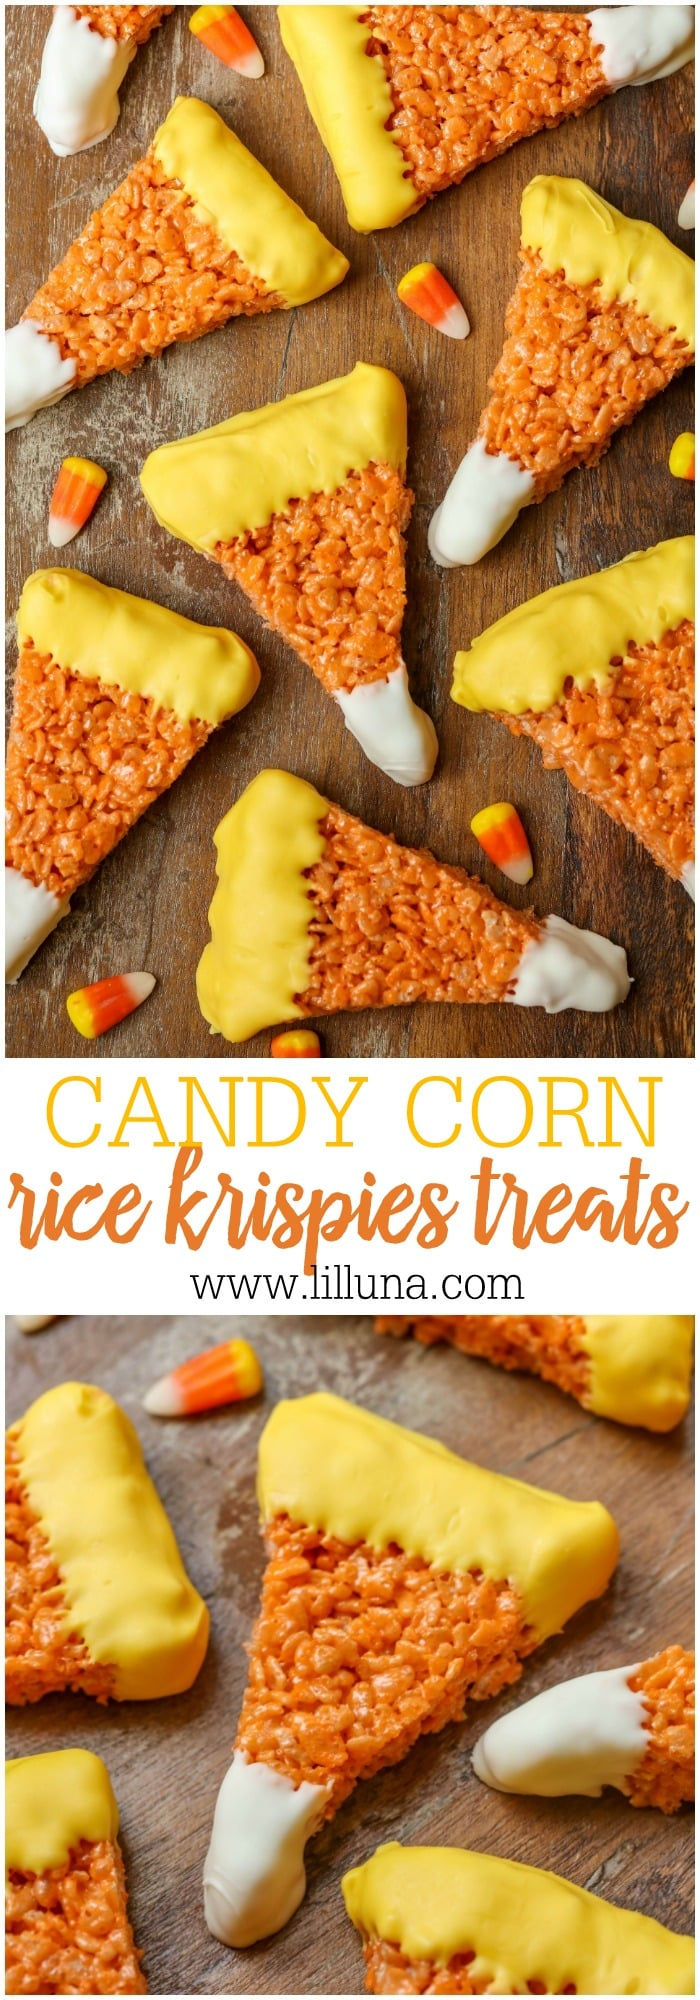 Candy Corn Rice Krispies Treats - these would be great for any party and are so CUTE!